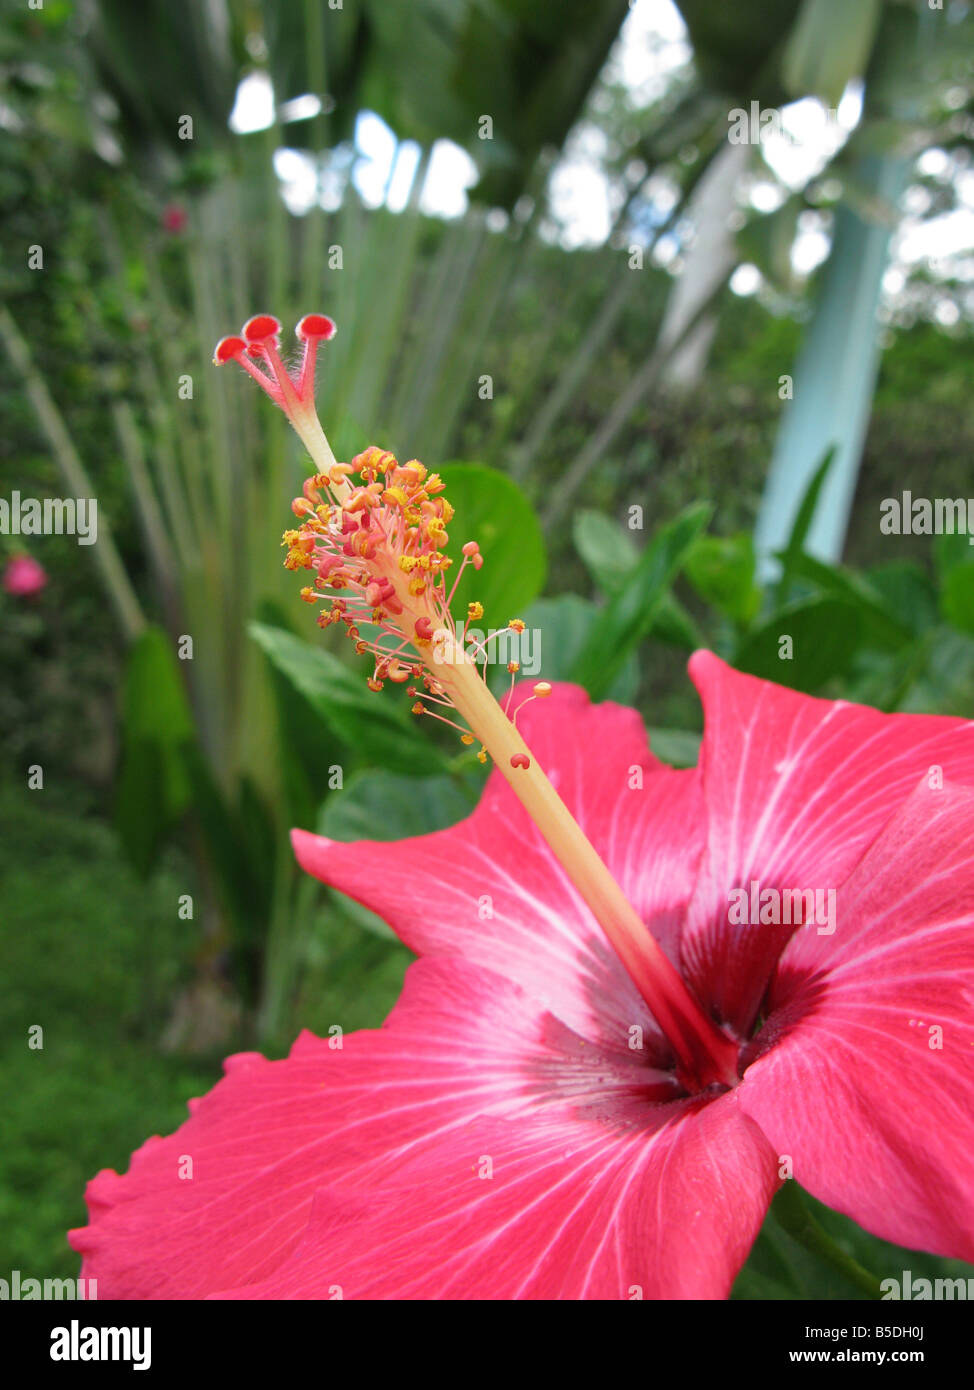 Native hibiscus stock photos native hibiscus stock images alamy flower hibiscus close up the genus hibiscus comprises plants also commonly called hibiscus and less widely izmirmasajfo